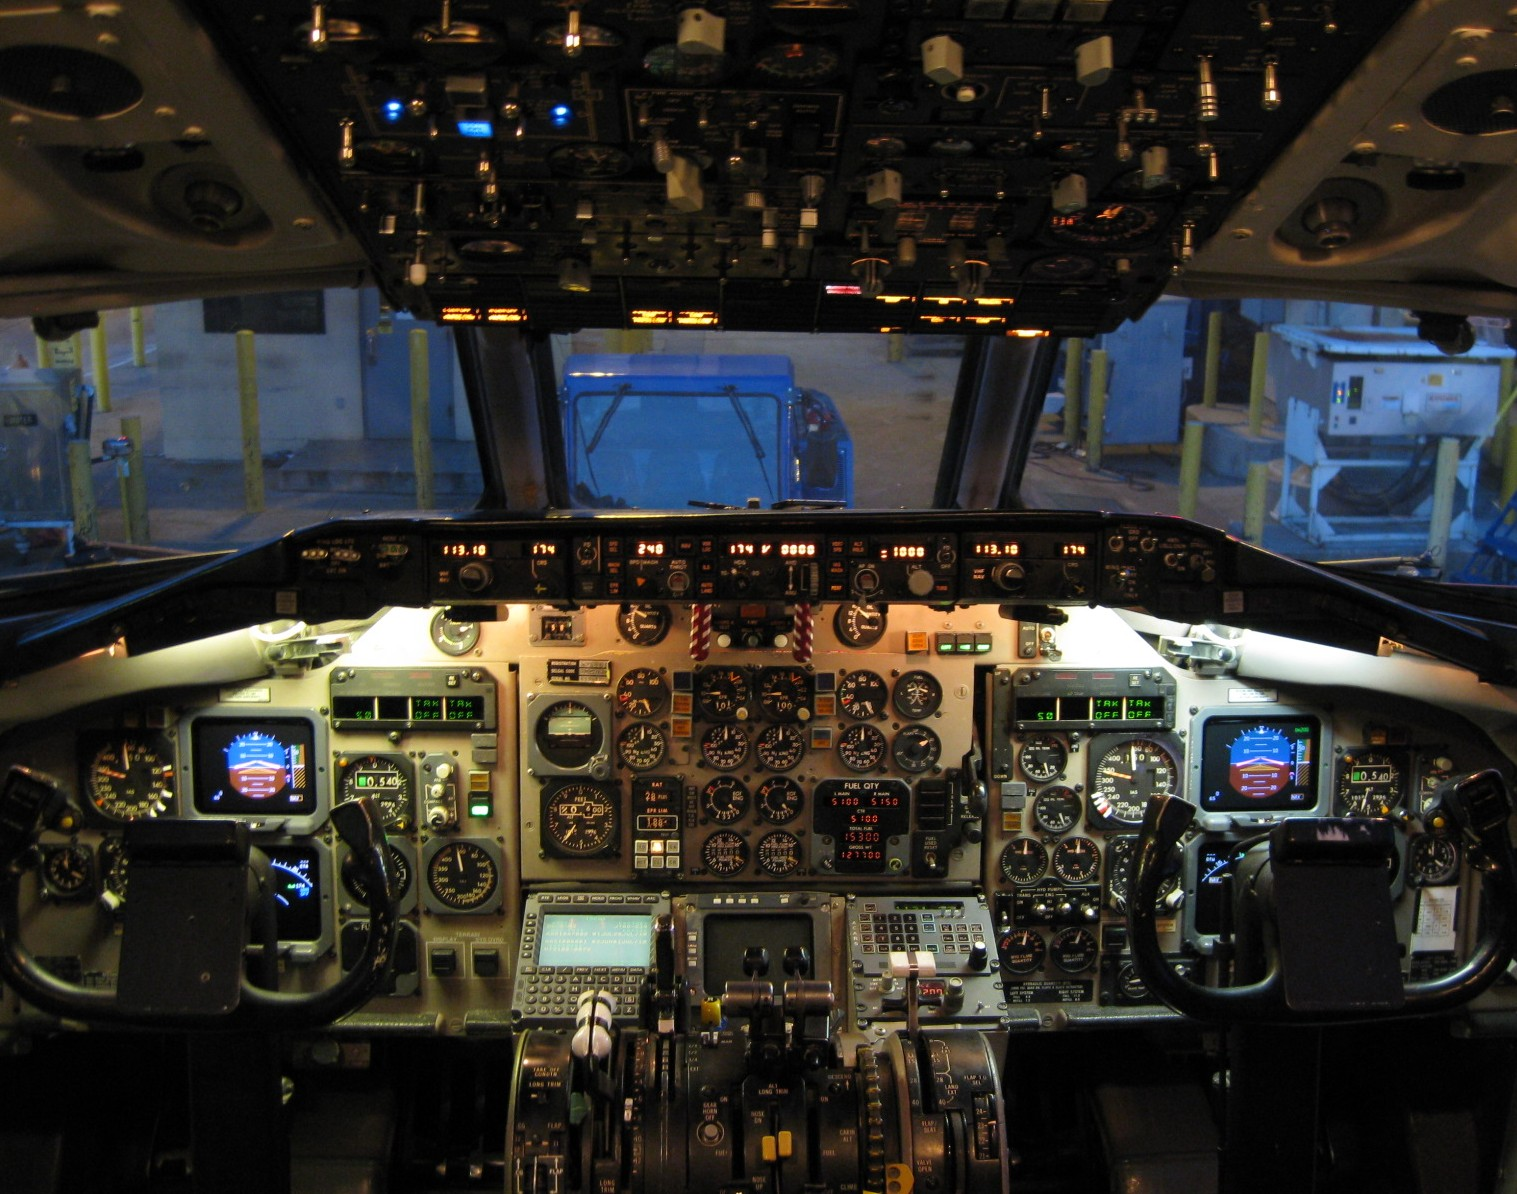 Md82 Or Md83 Differences Training Choice Airlines